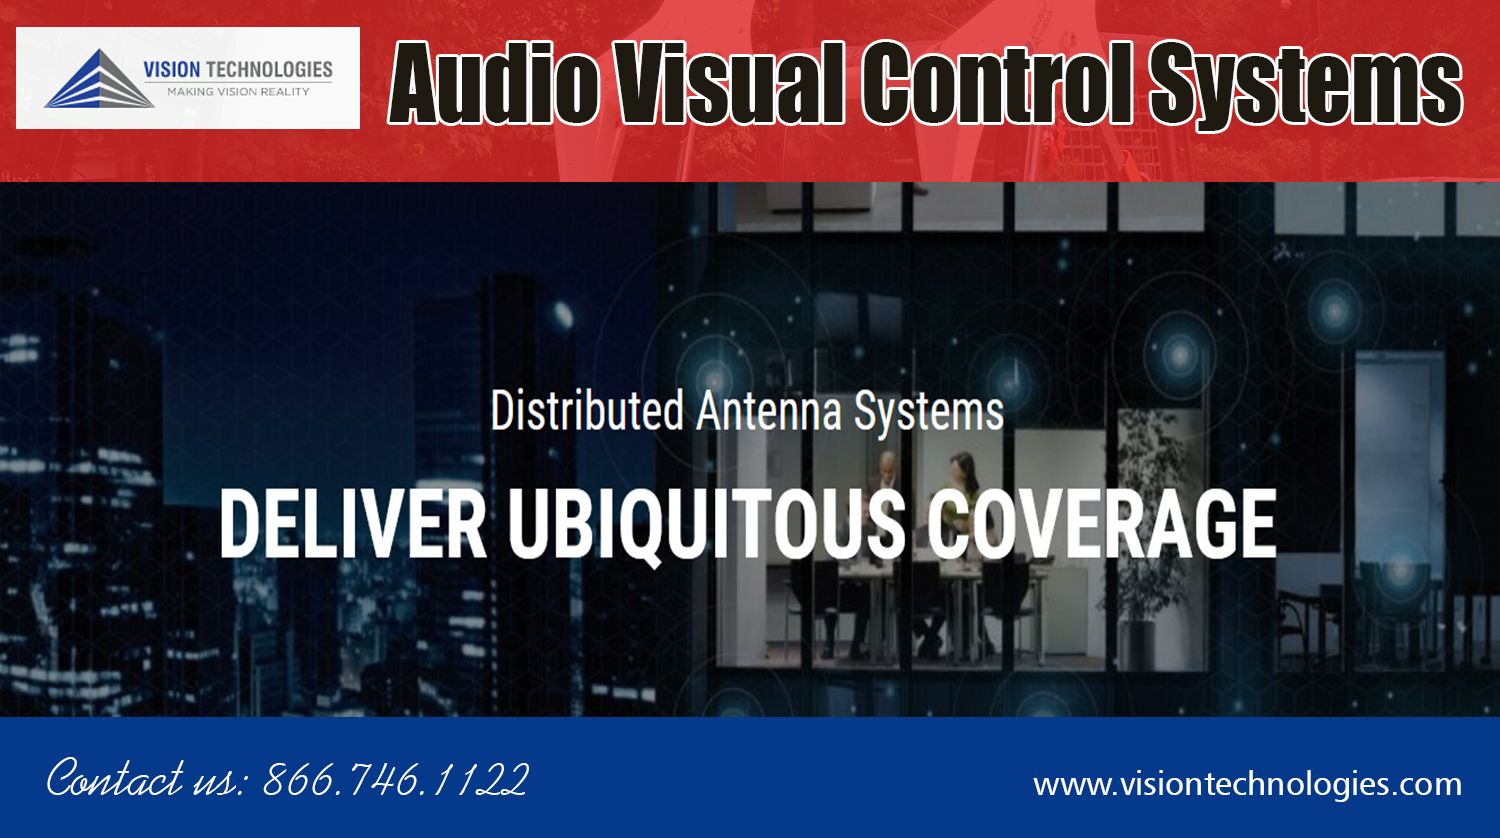 Audio Visual Control Systems Control System System Event Technology